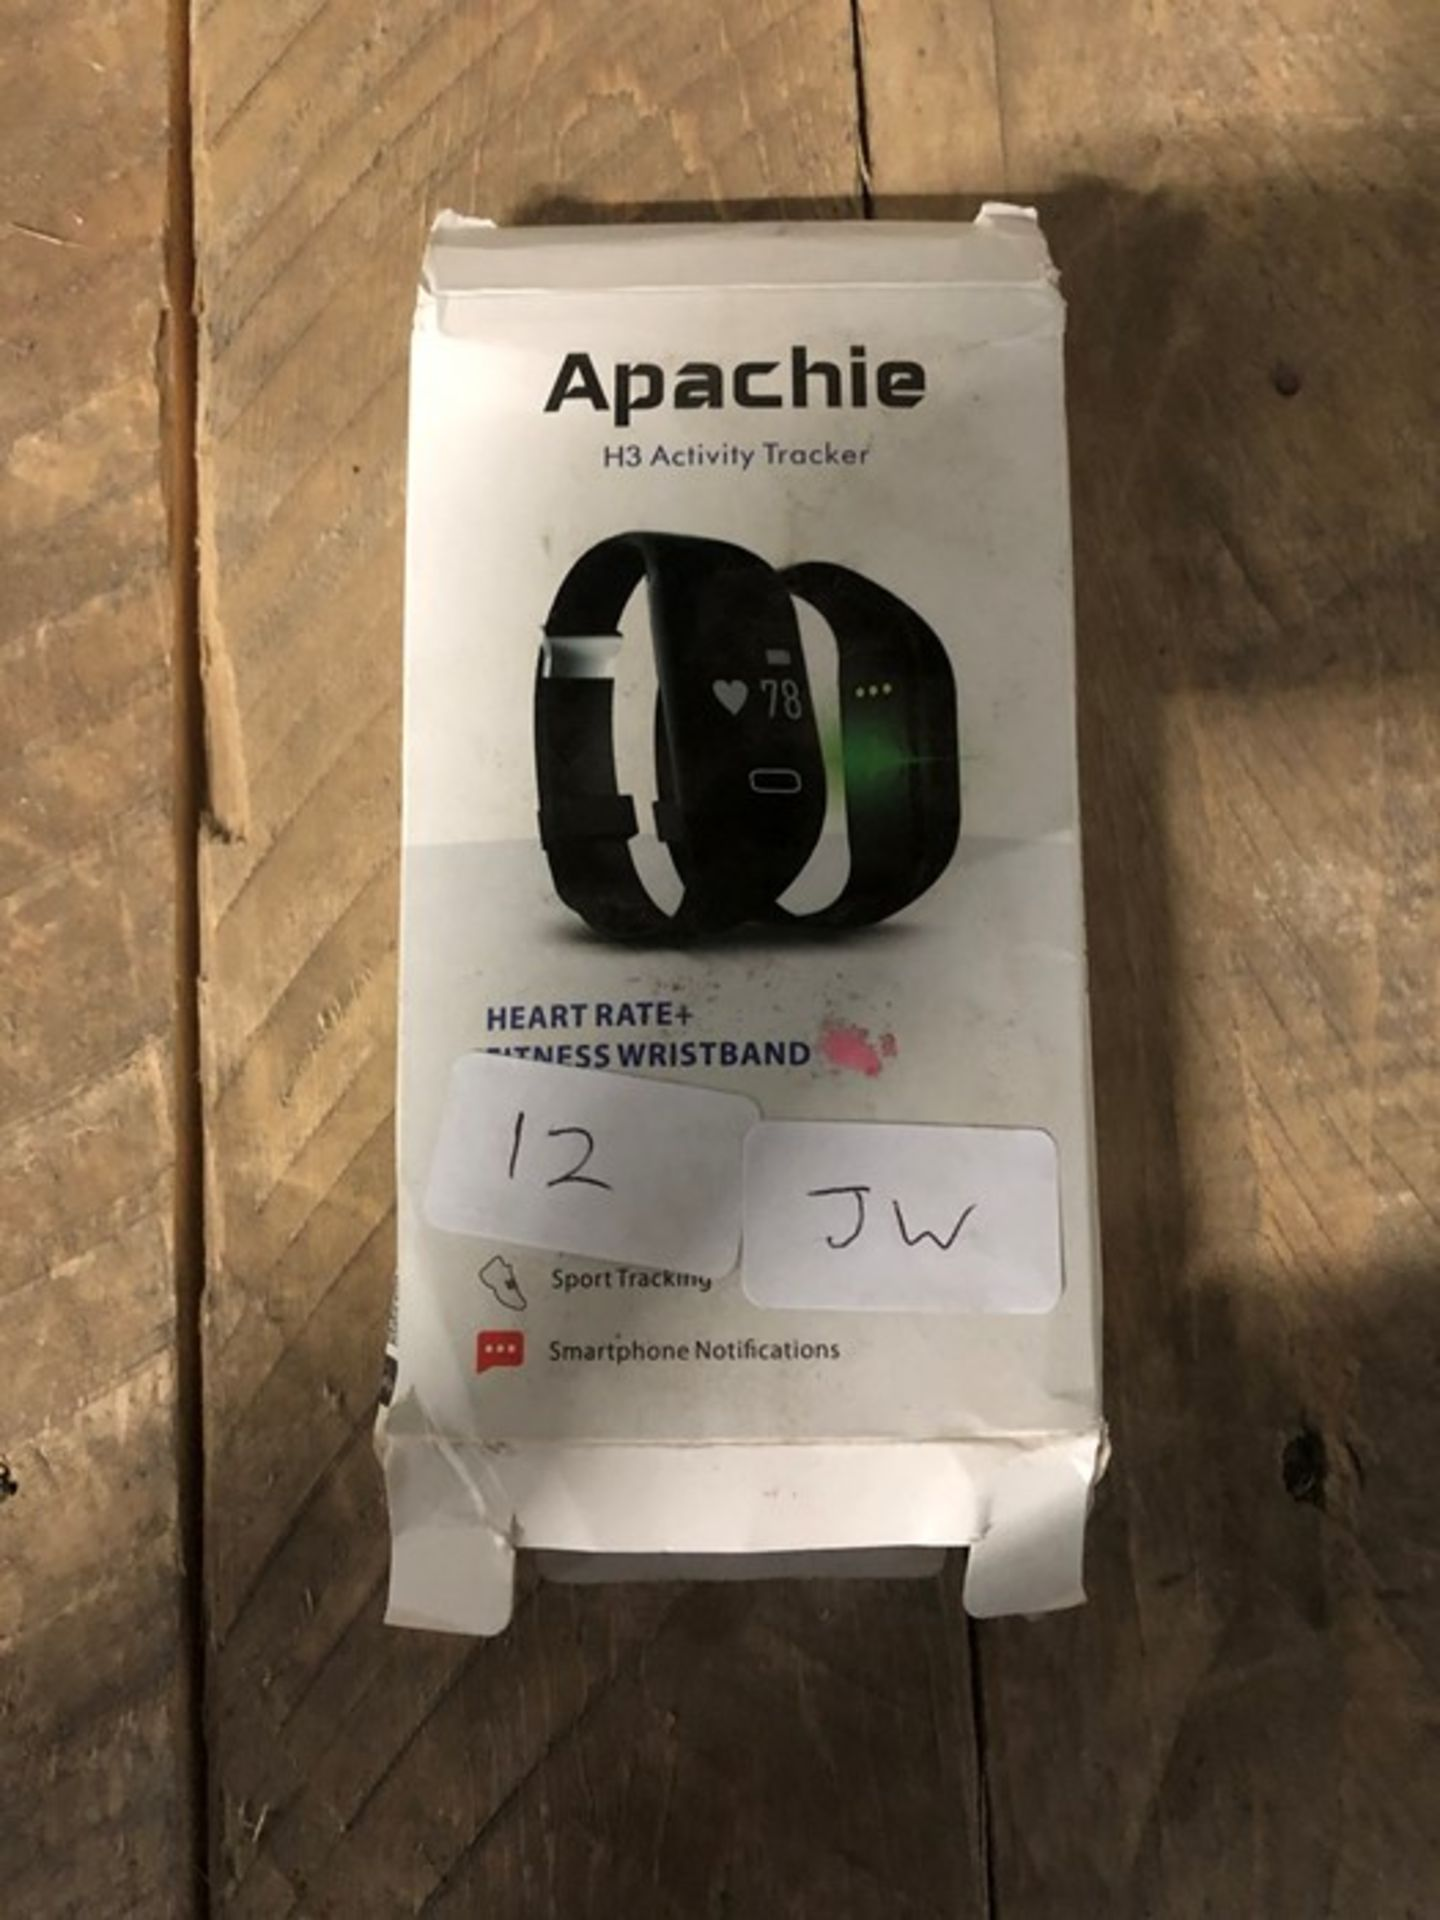 Lot 12 - 1 BOXED APACHE H3 ACTIVITY TRACKER HEART RATE + FITNESS WRISTBAND (VIEWING HIGHLY RECOMMENDED)